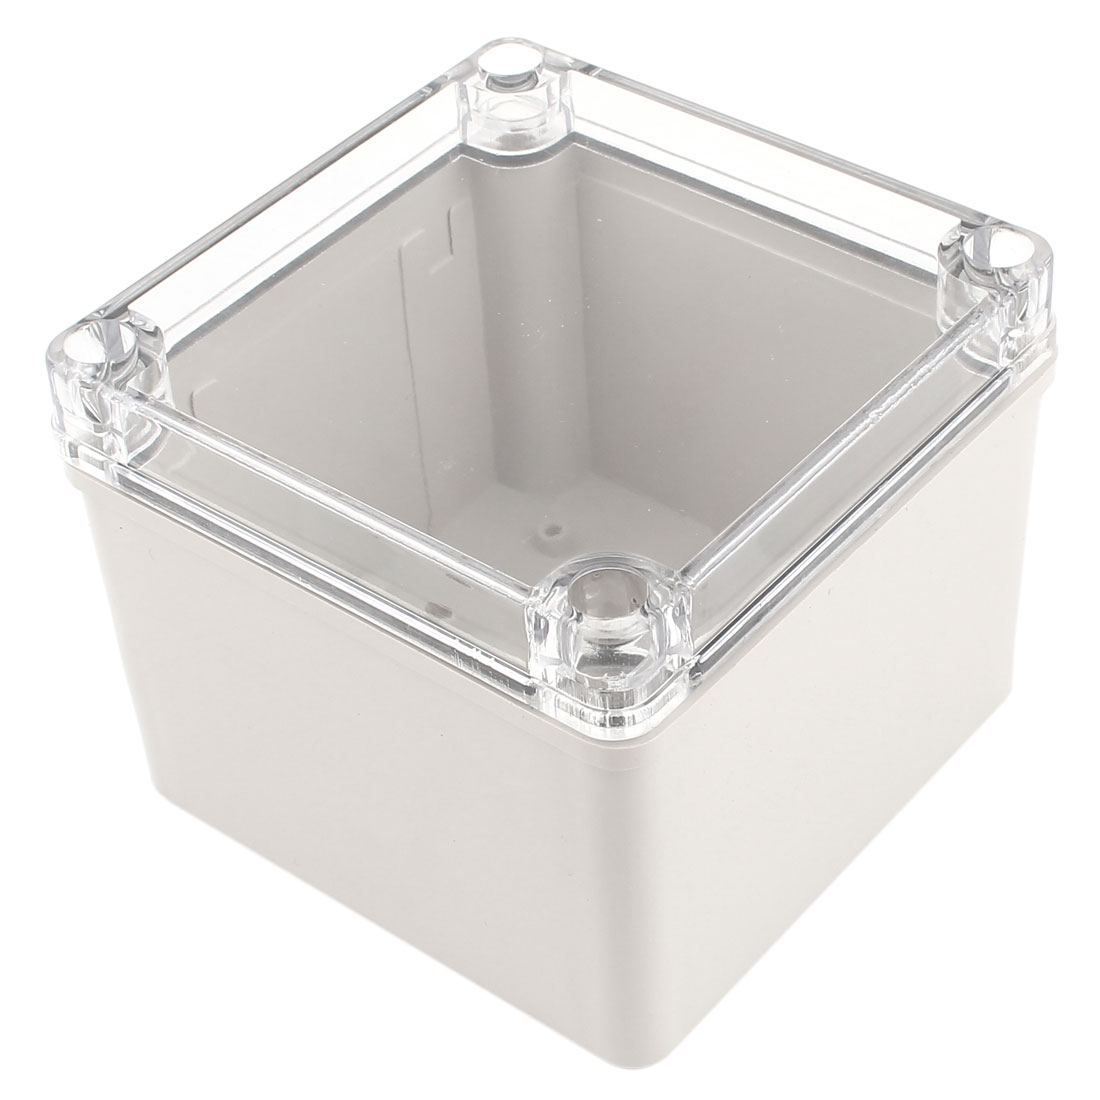 125mm x 125mm x 100mm Waterproof Plastic Sealed DIY Joint Electrical Junction Box